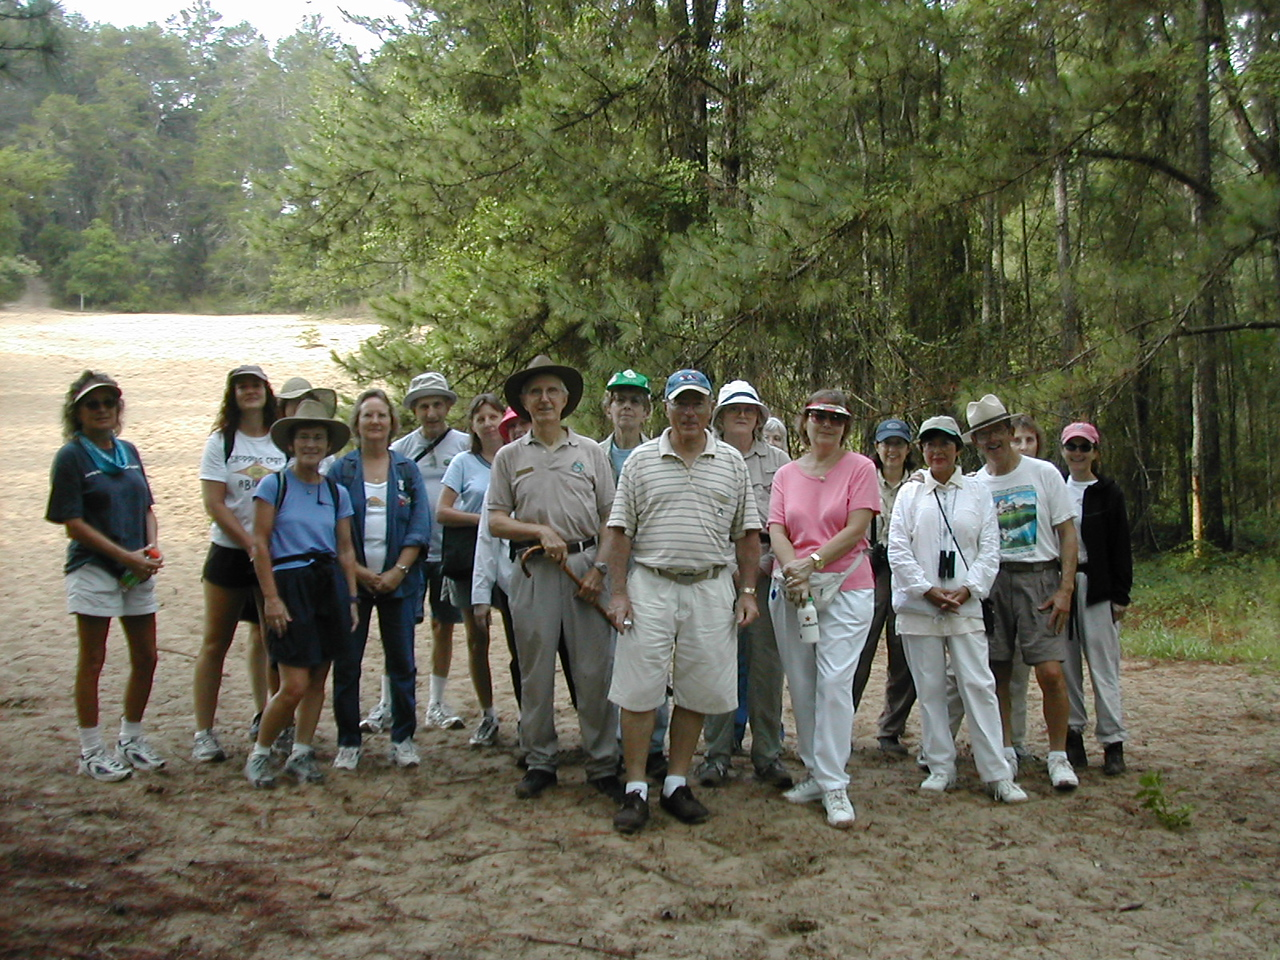 Hiking out to the Cross Florida Barge Canal diggings with Kenneth Smith<br /> PHOTO CREDIT: Florida Trail Association / Sandra Friend